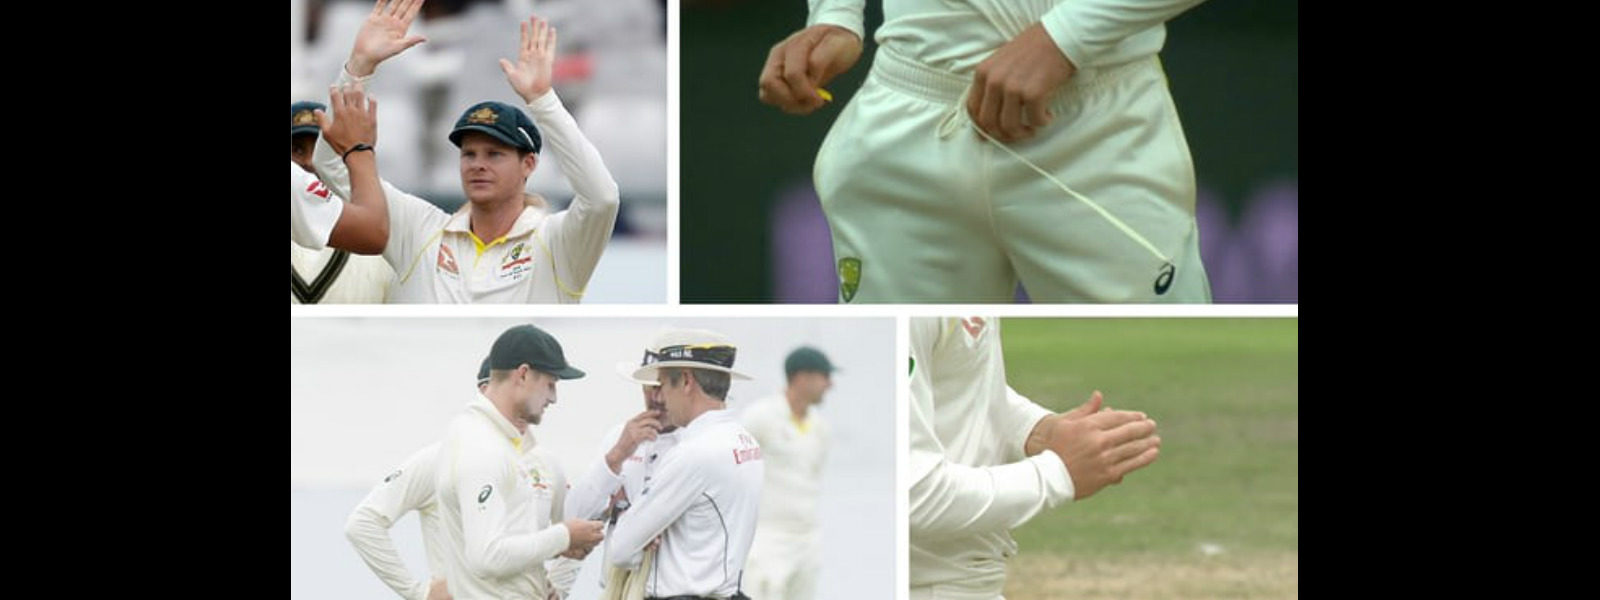 Australia's ball tampering scandal rocks the world